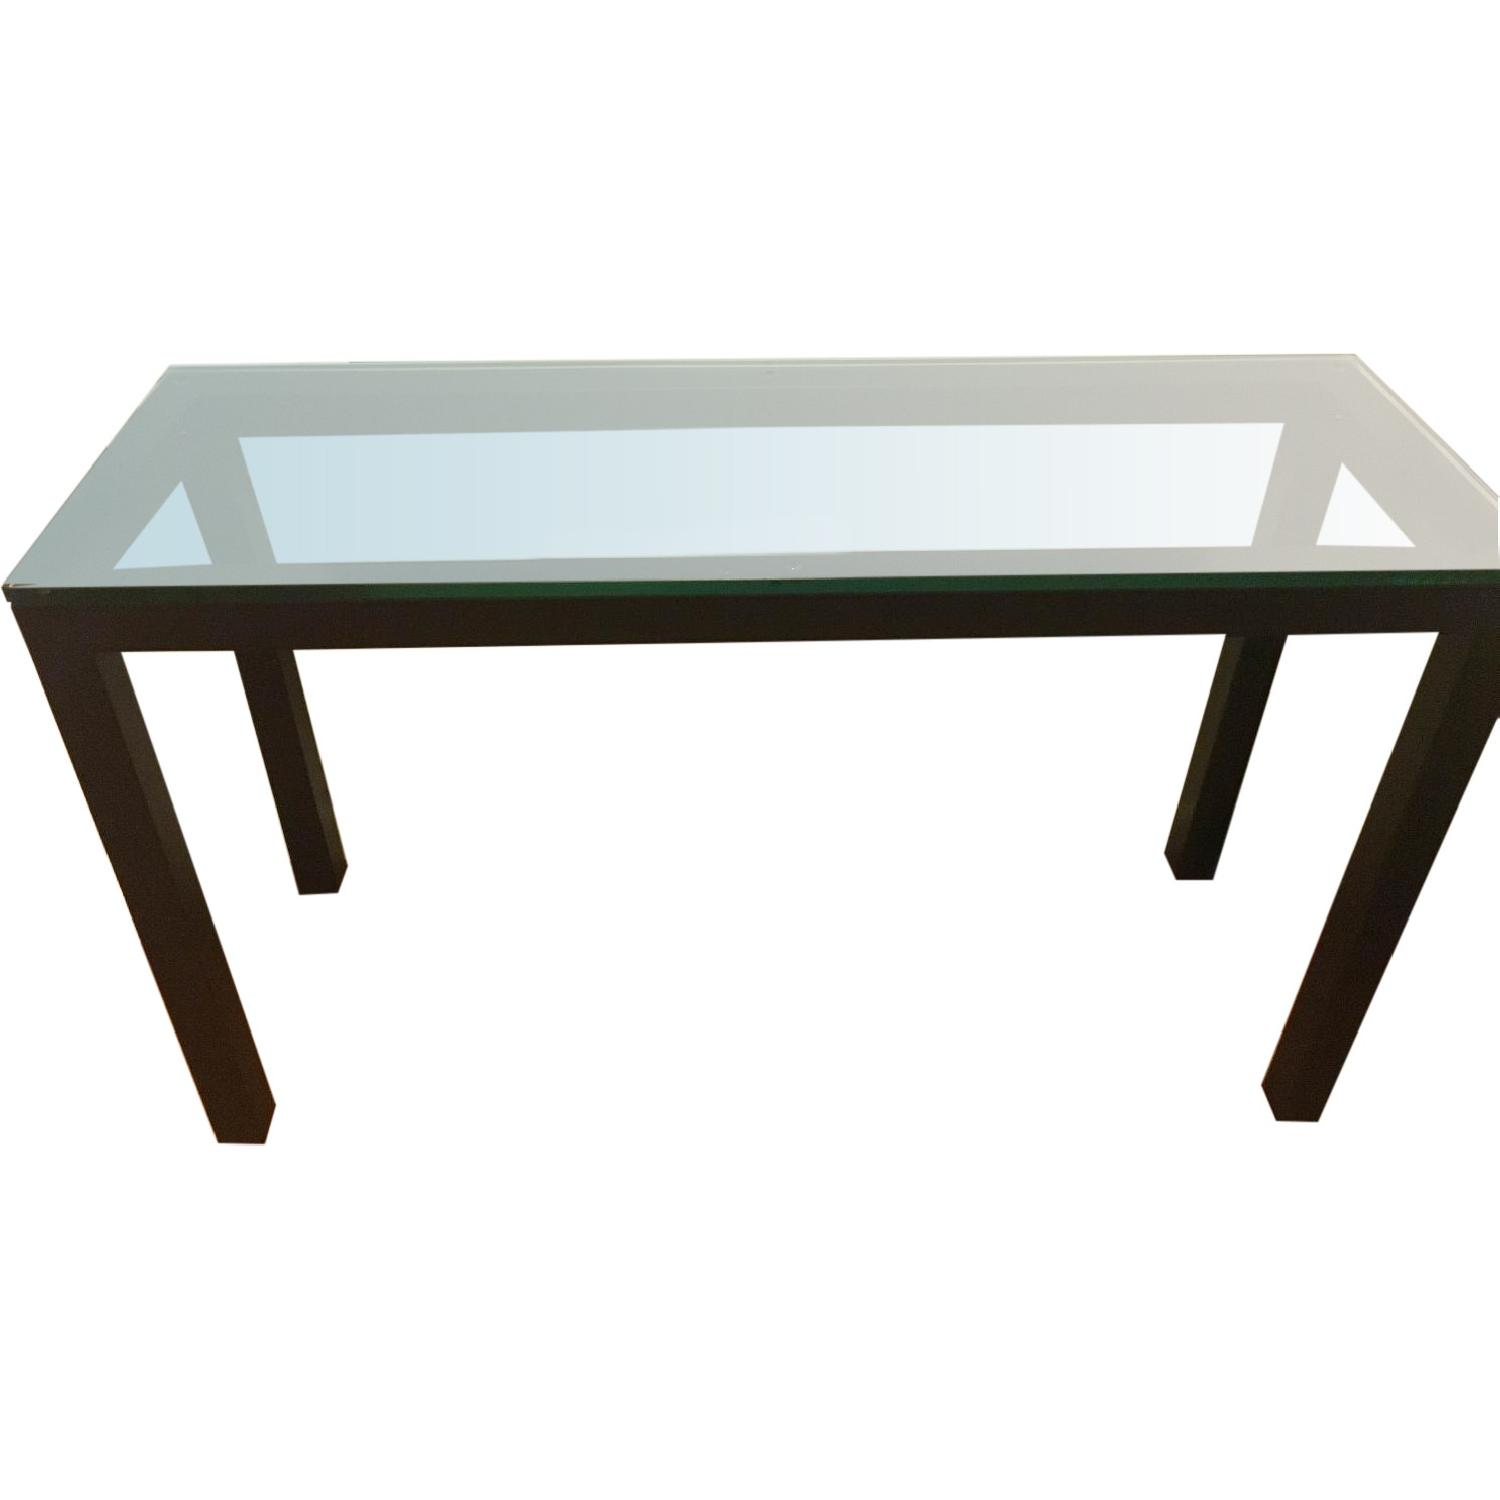 Crate & Barrel Parsons Console Table w/ Clear Glass Top - image-0